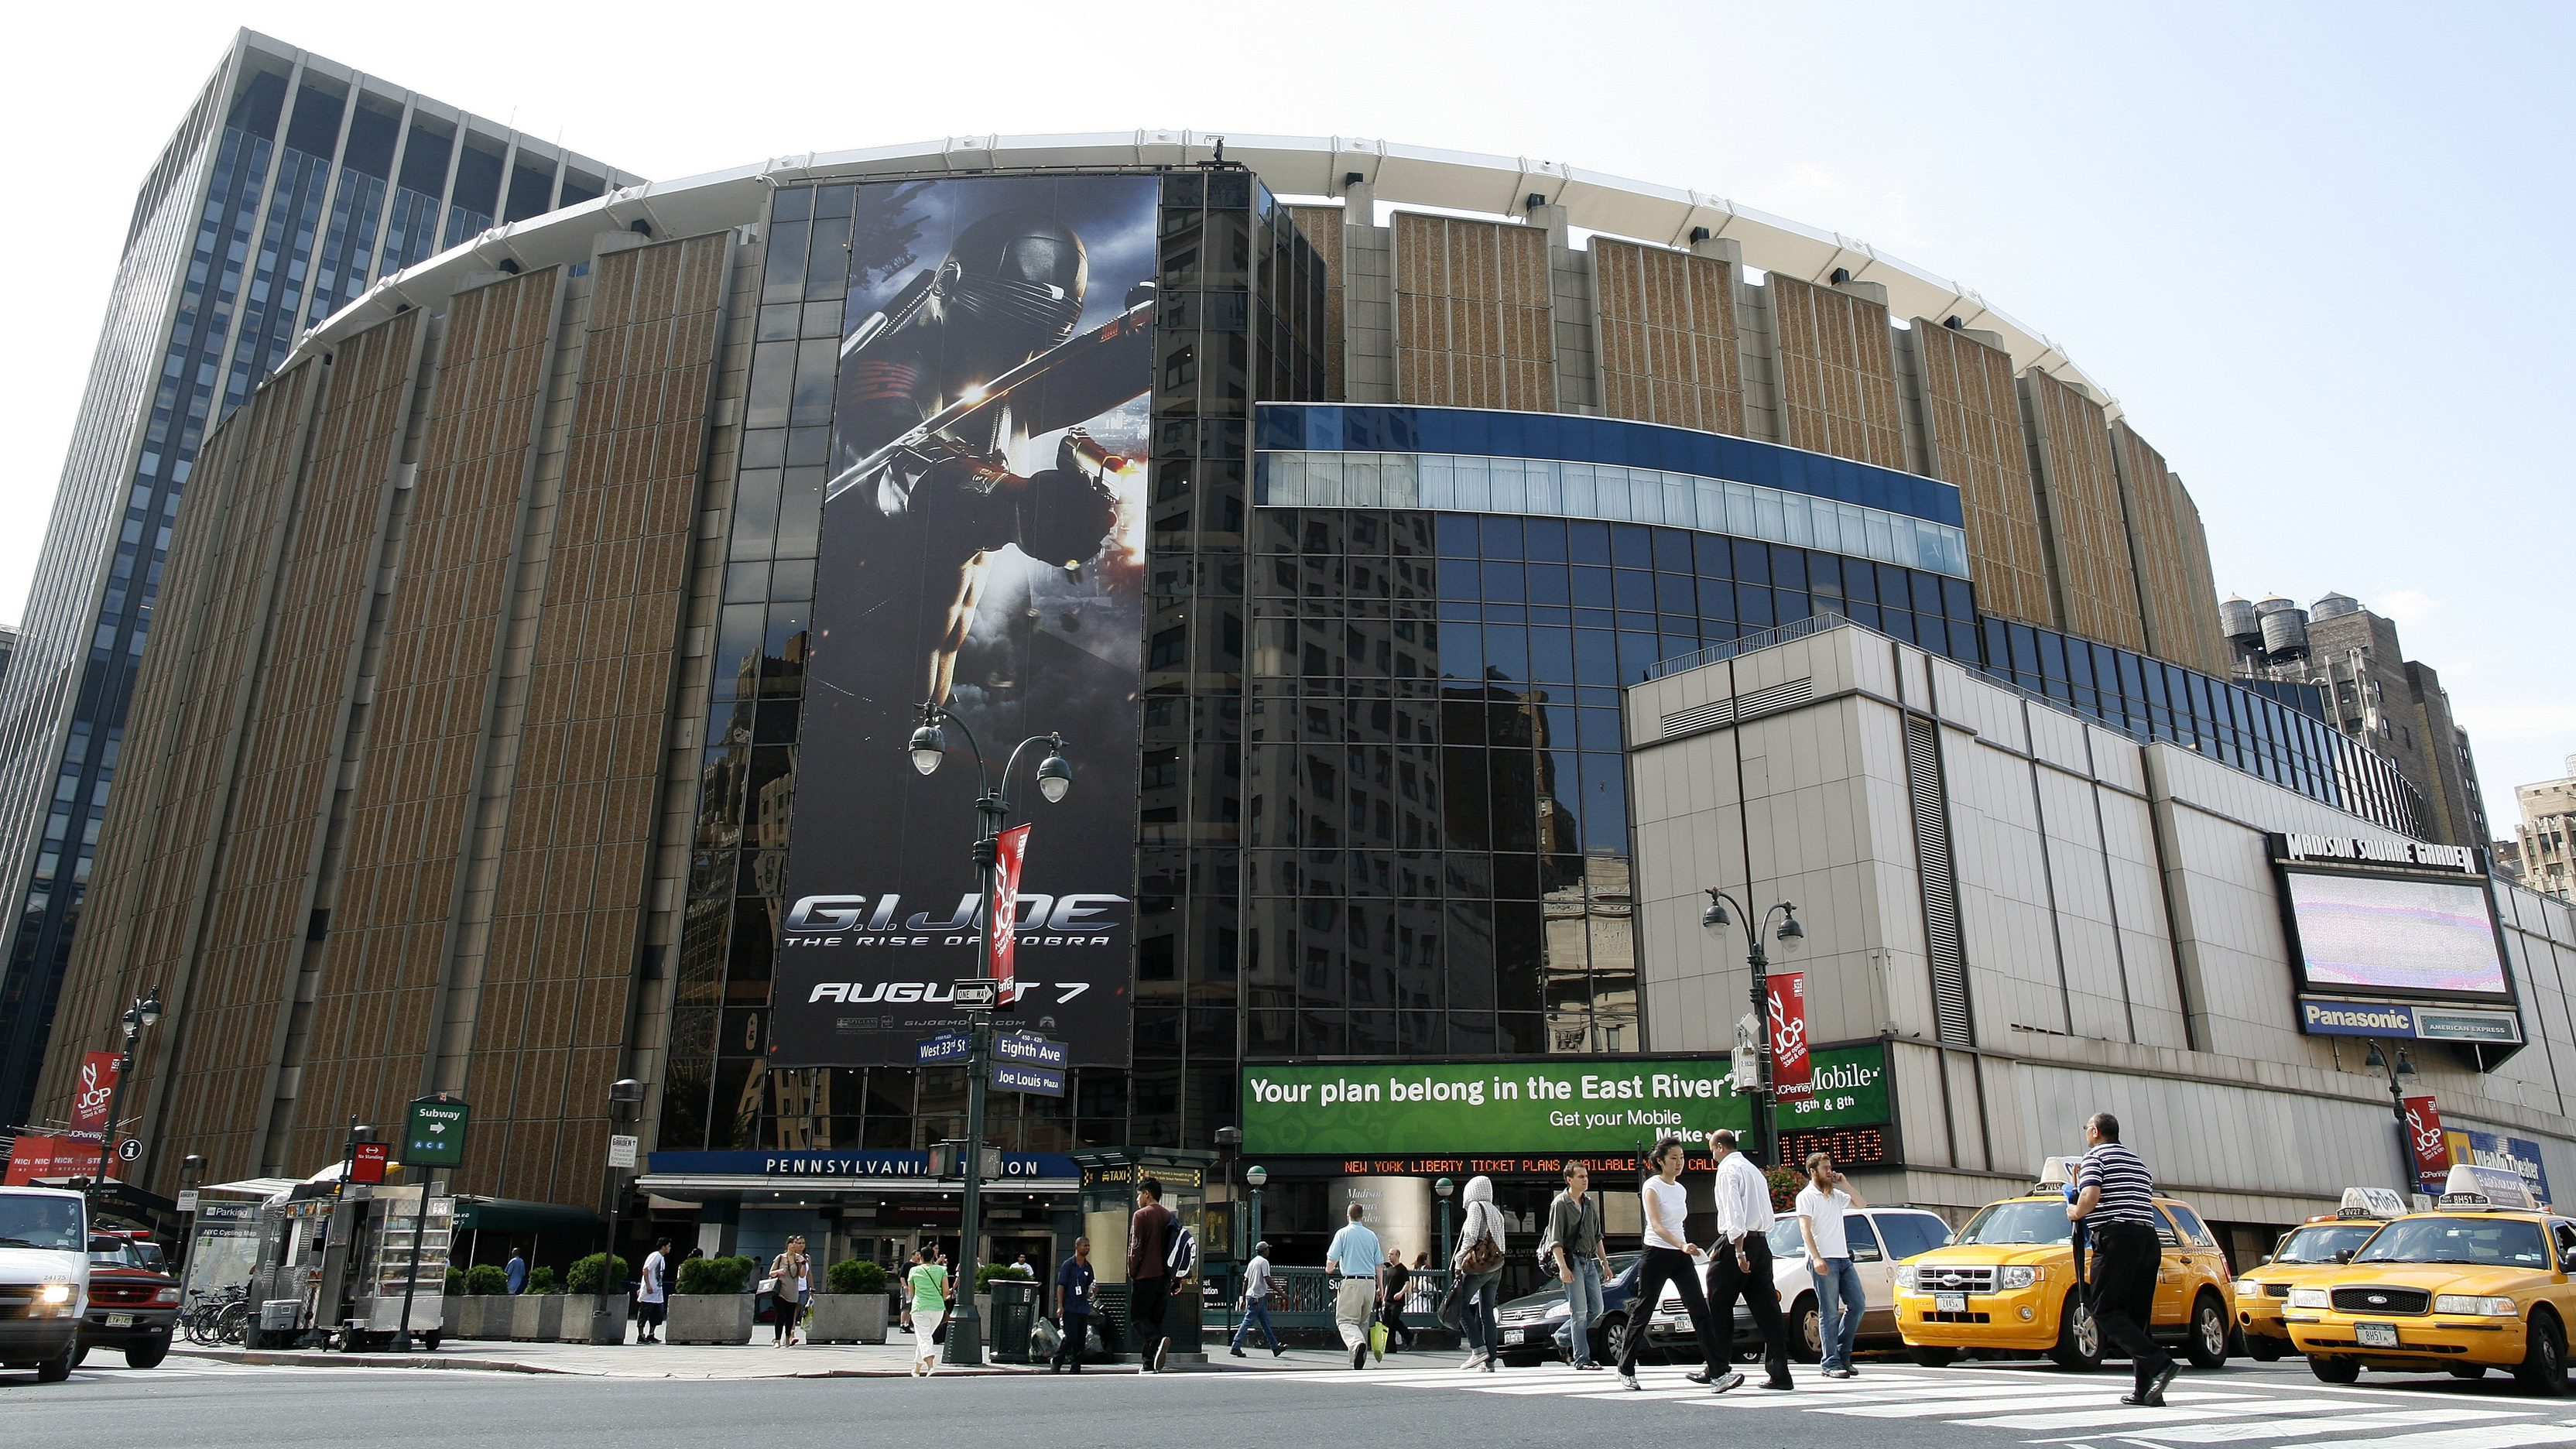 Madison Square Garden is seen in Midtown Manhattan section of New York, July 30, 2009. Cablevision Systems Corp board approved a spinoff of its Madison Square Garden unit by year-end, in hopes of a better valuation from Wall Street for assets such as its New York Knicks basketball team and Radio City Music Hall.   REUTERS/Brendan McDermid (UNITED STATES BUSINESS ENTERTAINMENT) - GM1E57V027X01